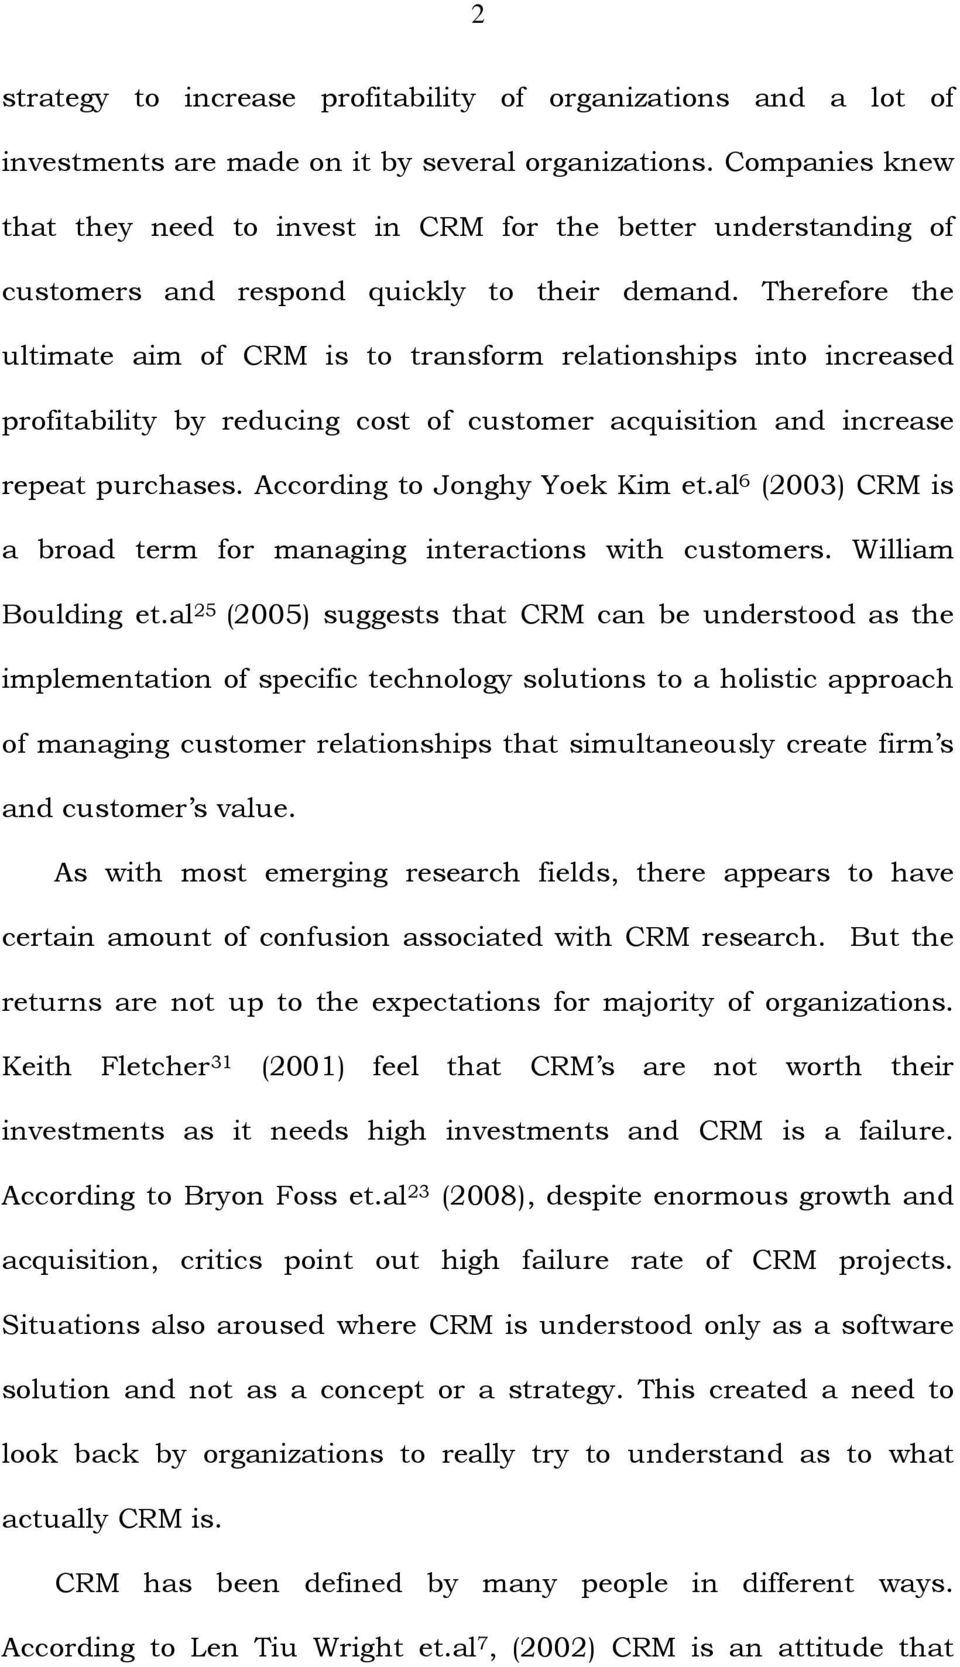 Therefore the ultimate aim of CRM is to transform relationships into increased profitability by reducing cost of customer acquisition and increase repeat purchases. According to Jonghy Yoek Kim et.